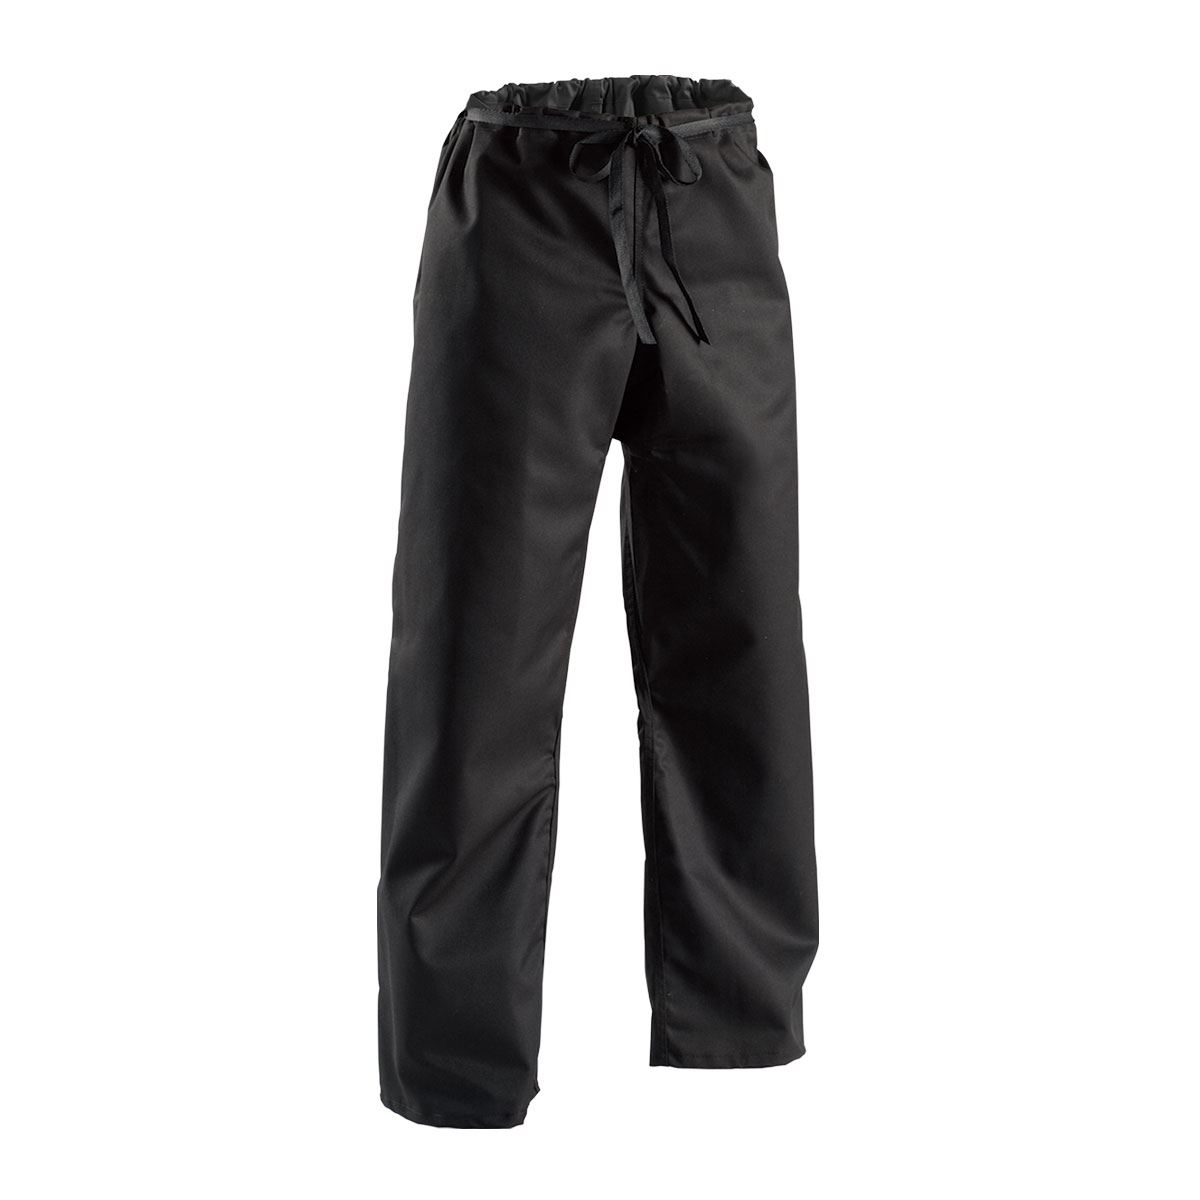 Black Heavyweight Traditional Karate Pants